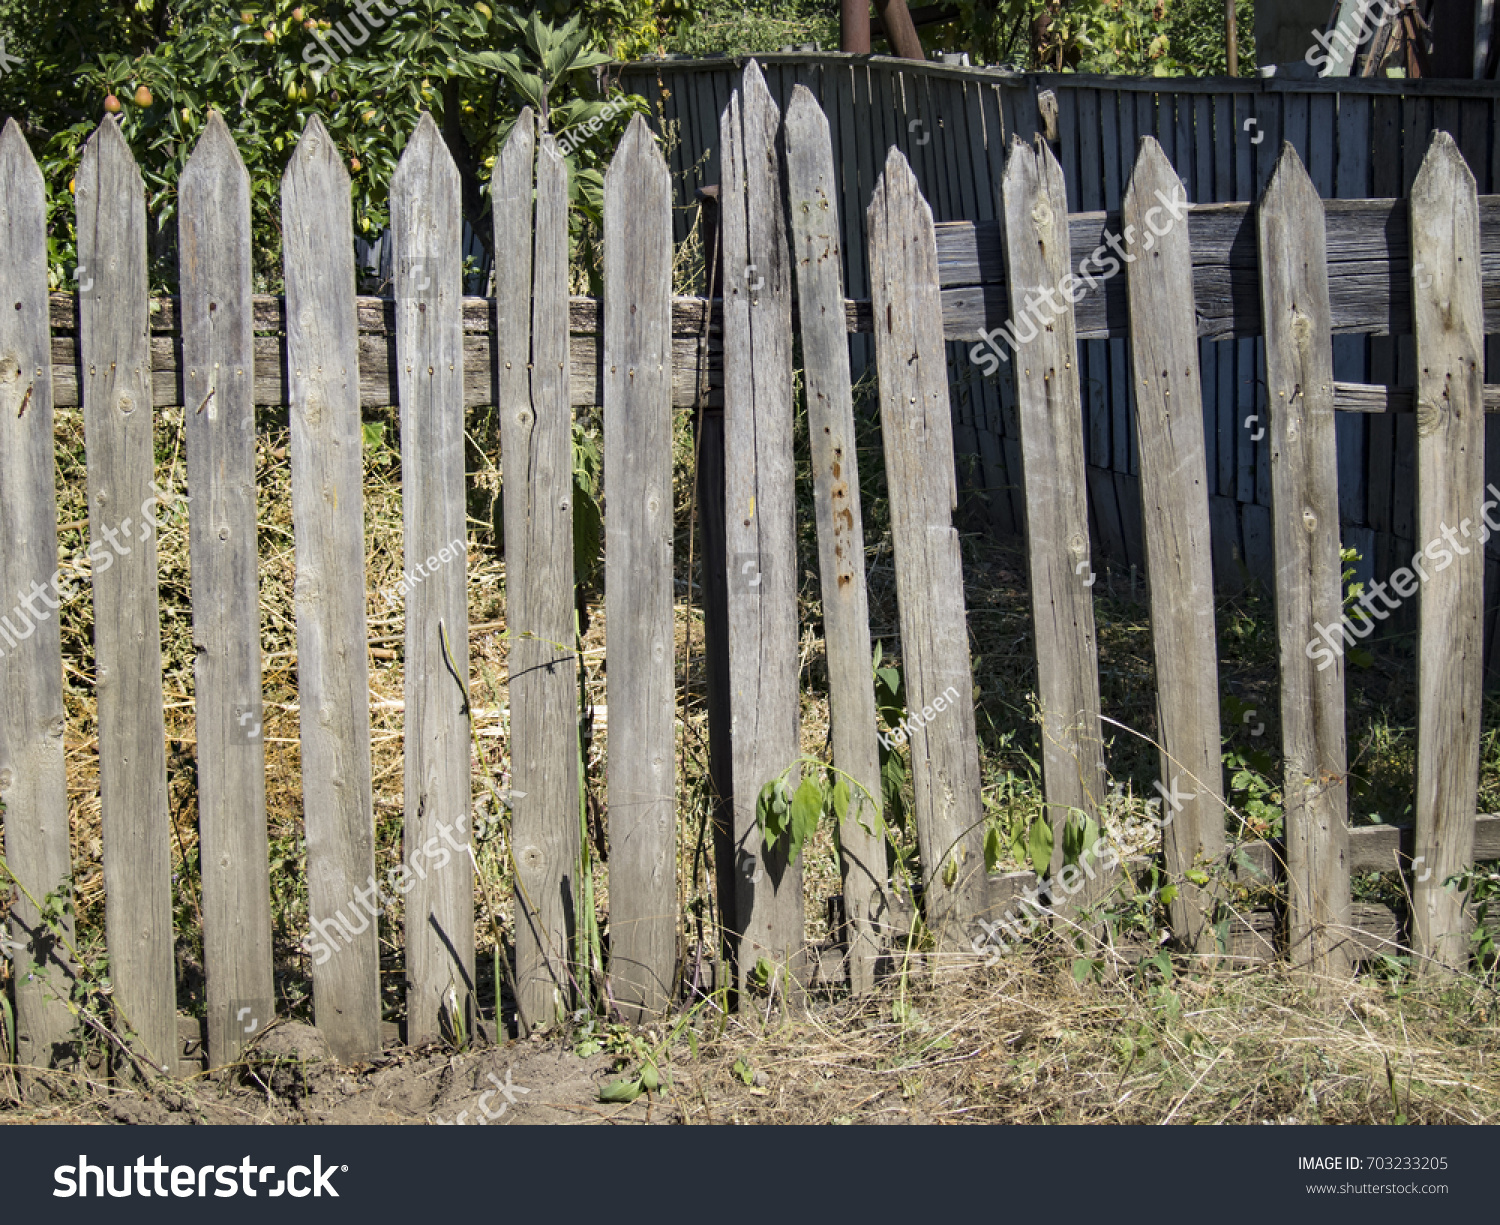 wood picket fence texture. Old Village Fence Rickety Wooden Stock Photo (Royalty Free) 703233205 - Shutterstock Wood Picket Texture